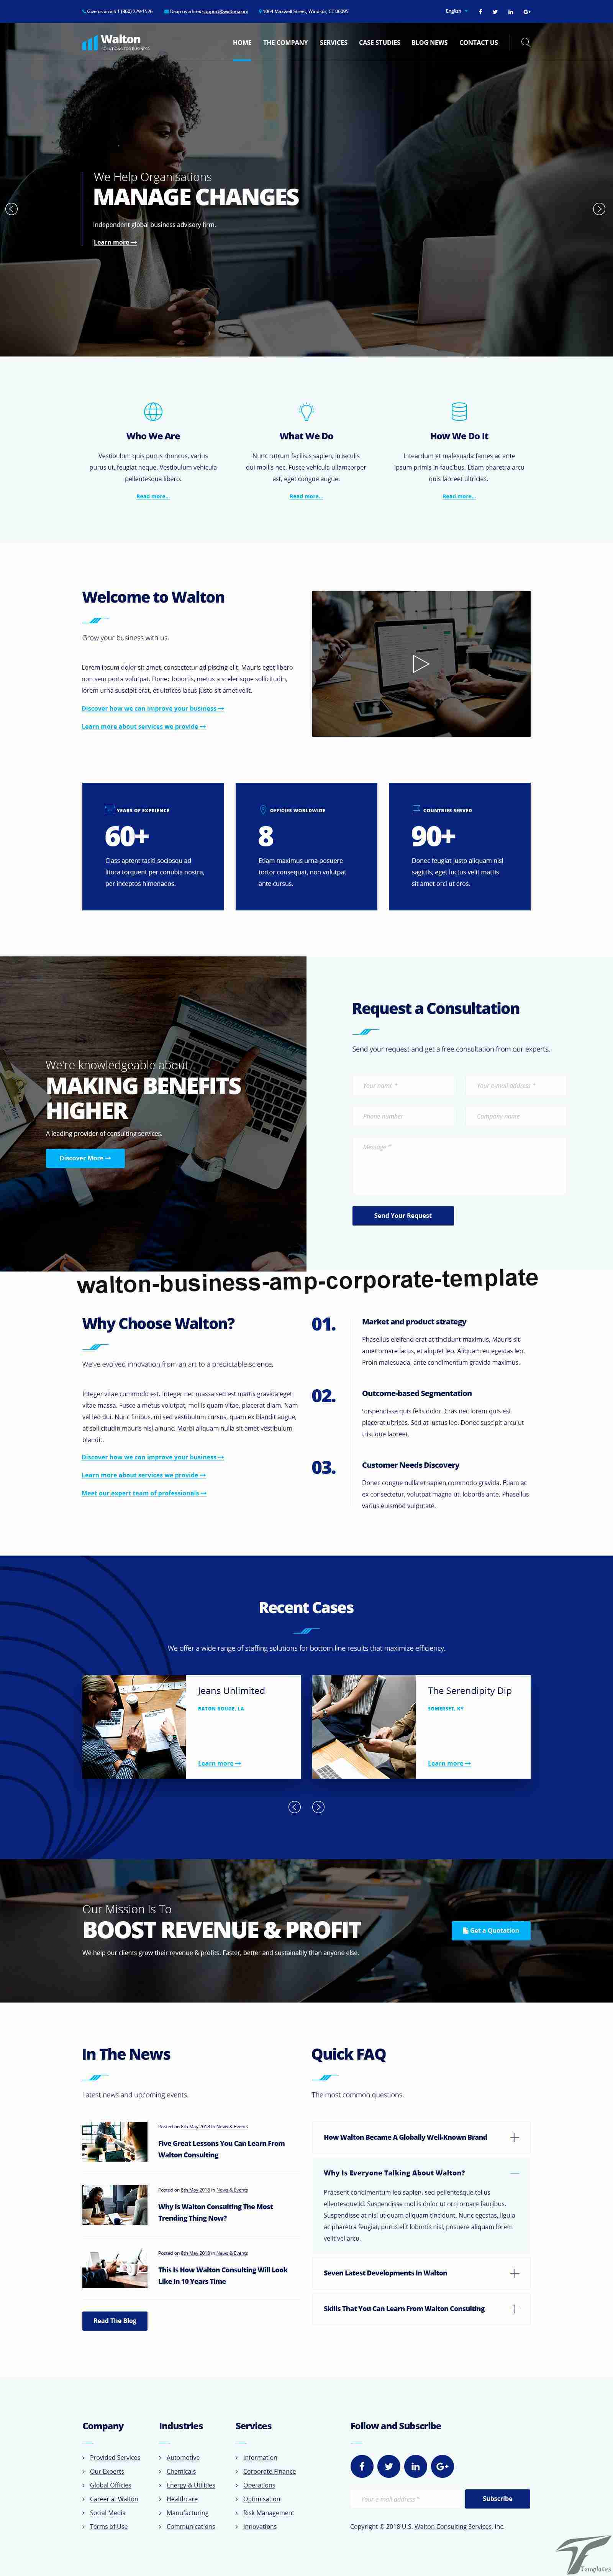 https://images.besthemes.com/images/h1_walton-business-amp-corporate-template4-_-248336682-sshot-04_walton_home_3.jpg